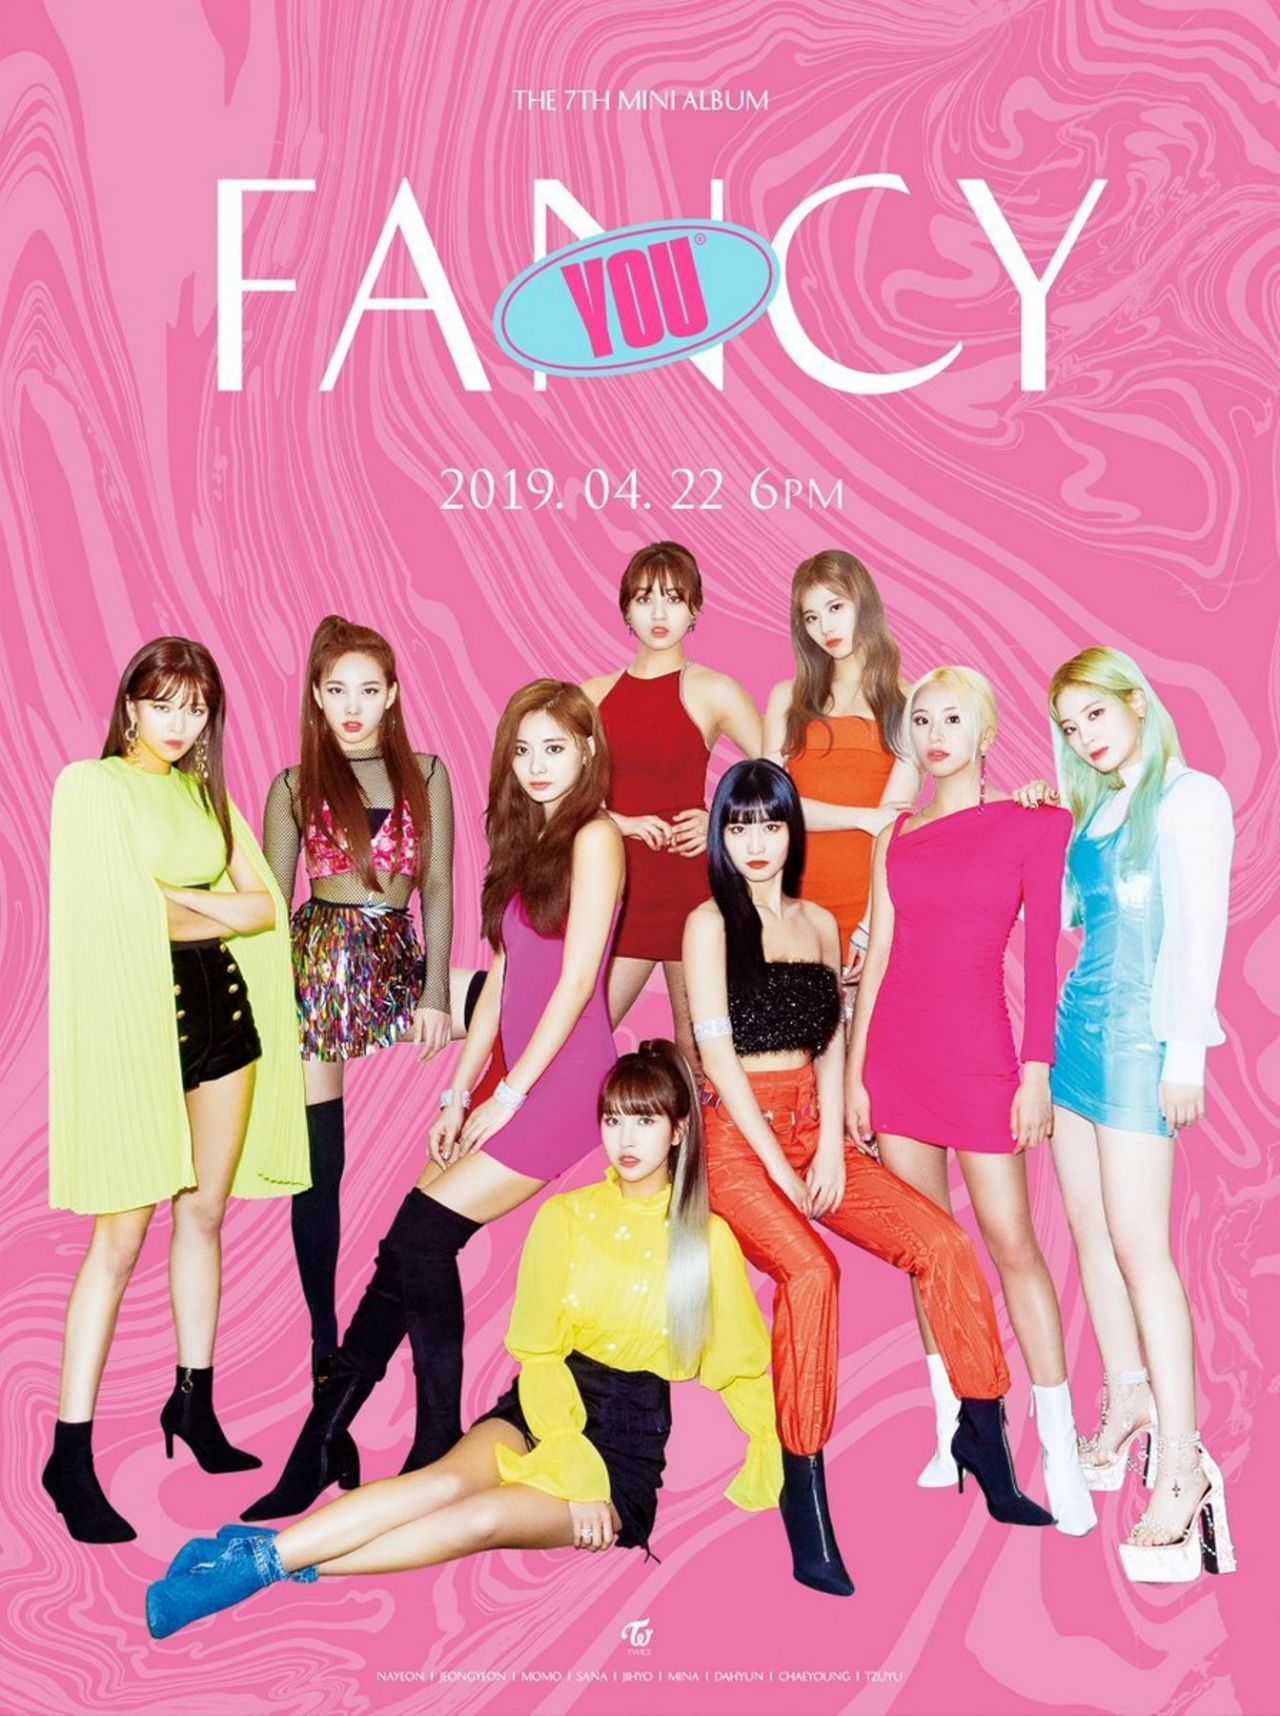 Twice Fancy You Photos 2019